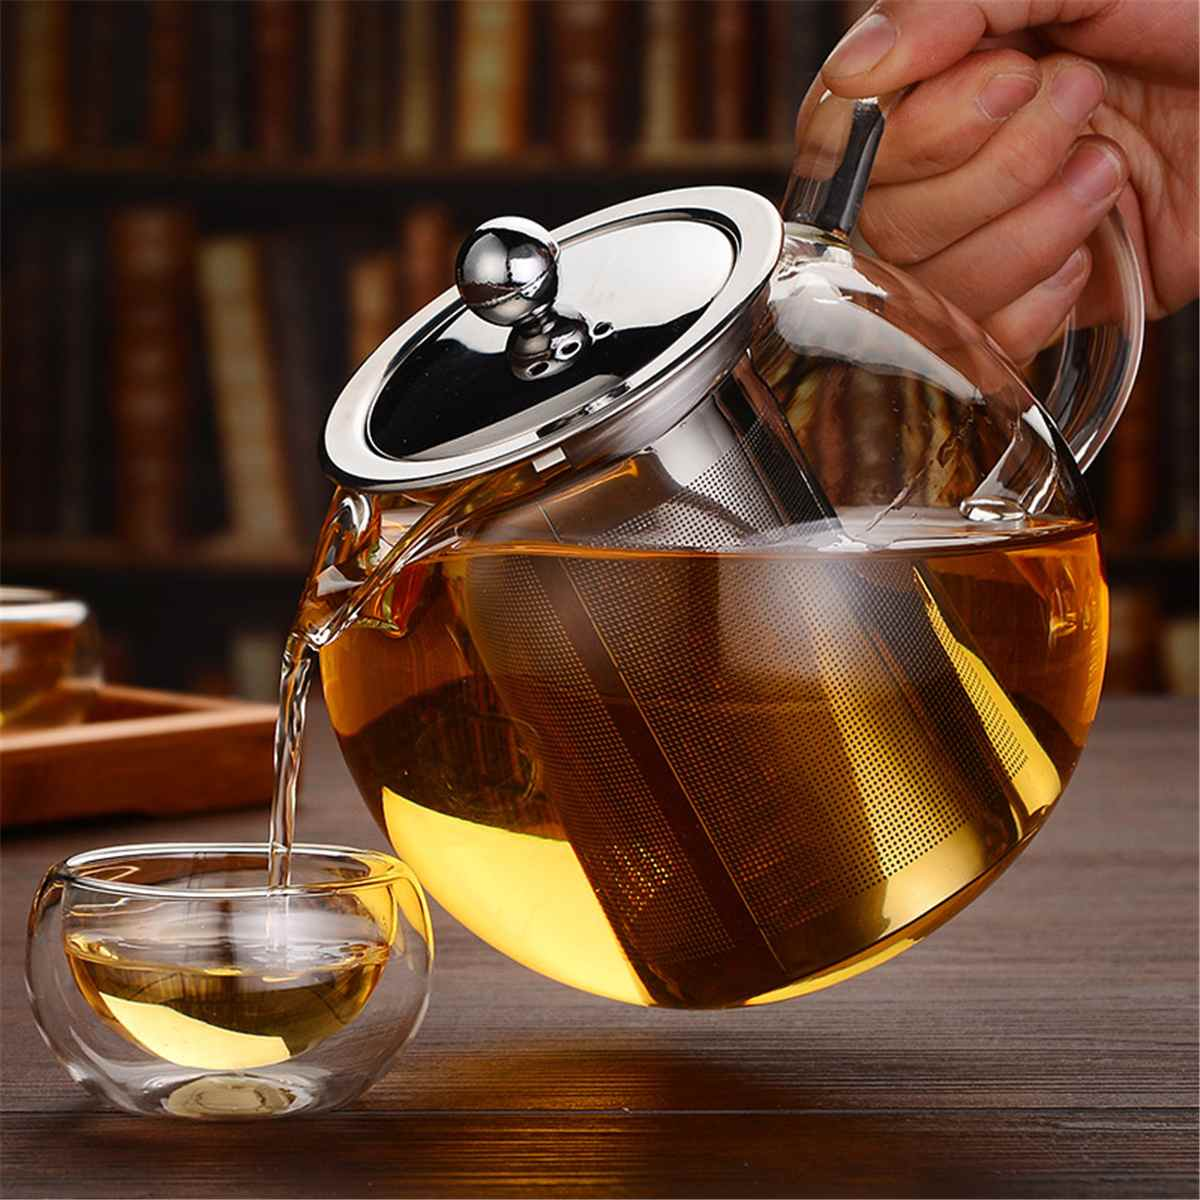 600/950/1300ml Glass Stainless Steel Teapot with Infuser Filter Lid Heat Resistant Tea Pot Kettle Home Office Teaware Set|Teapots| |  - title=